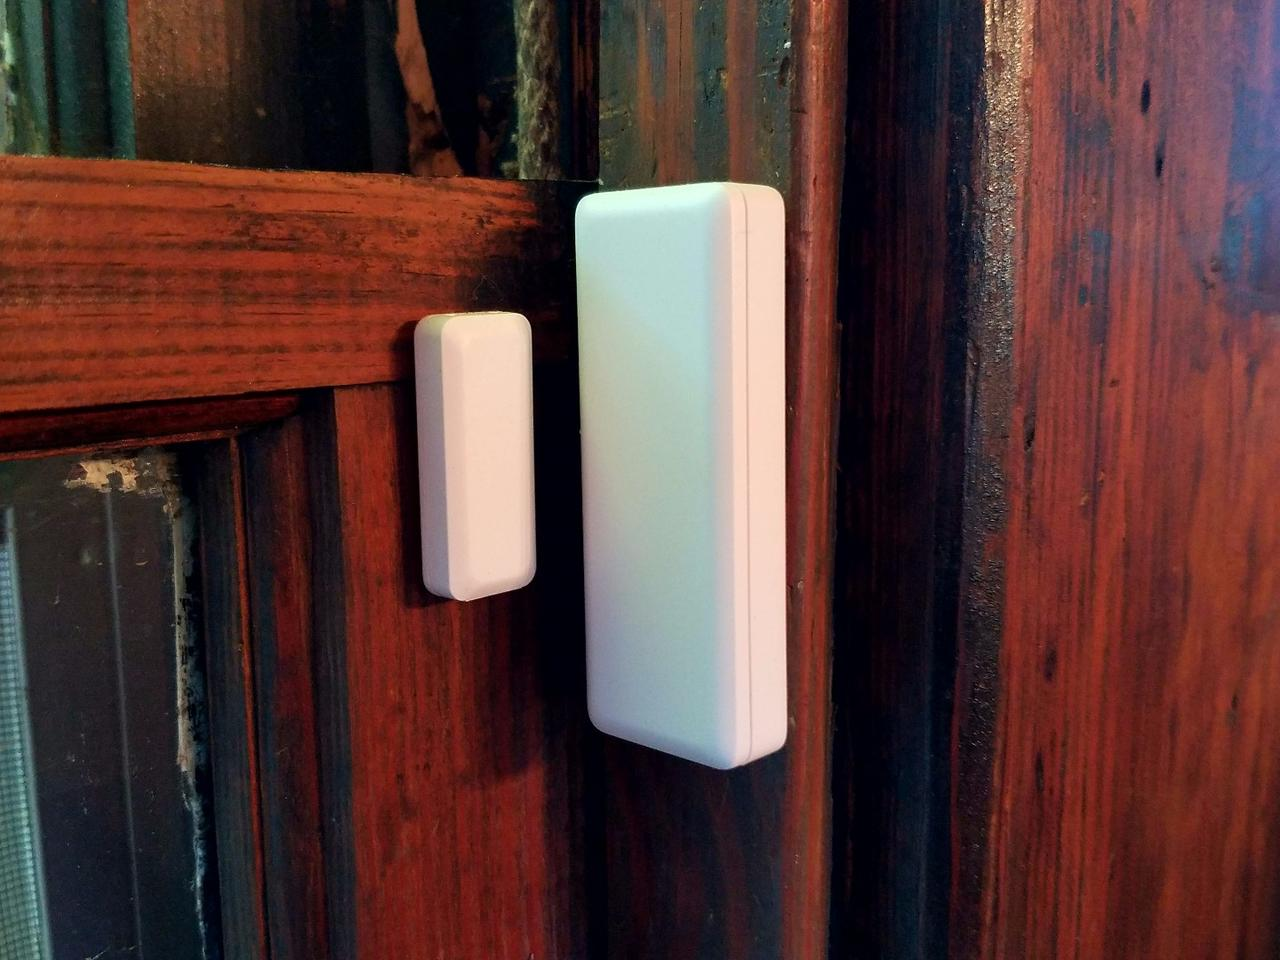 The Vivint home security system window sensors